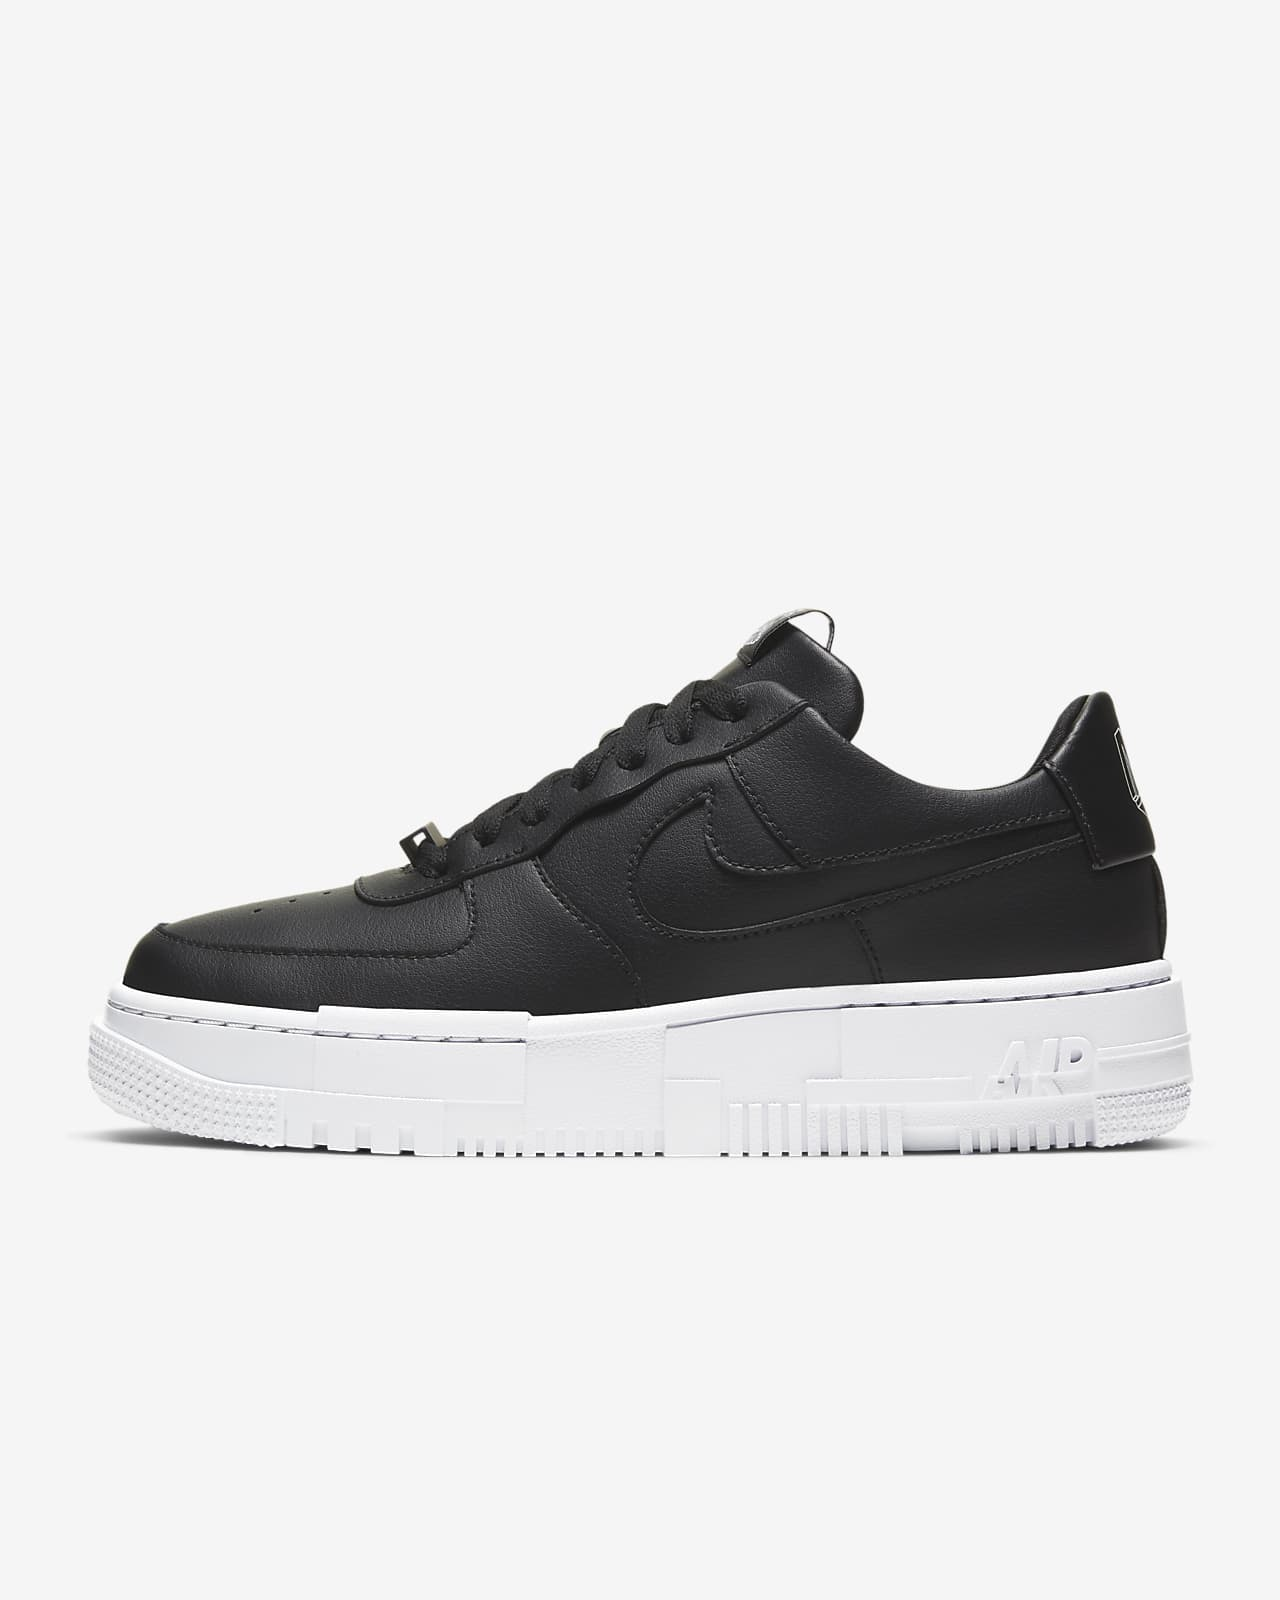 Nike Air Force 1 Pixel Damenschuh